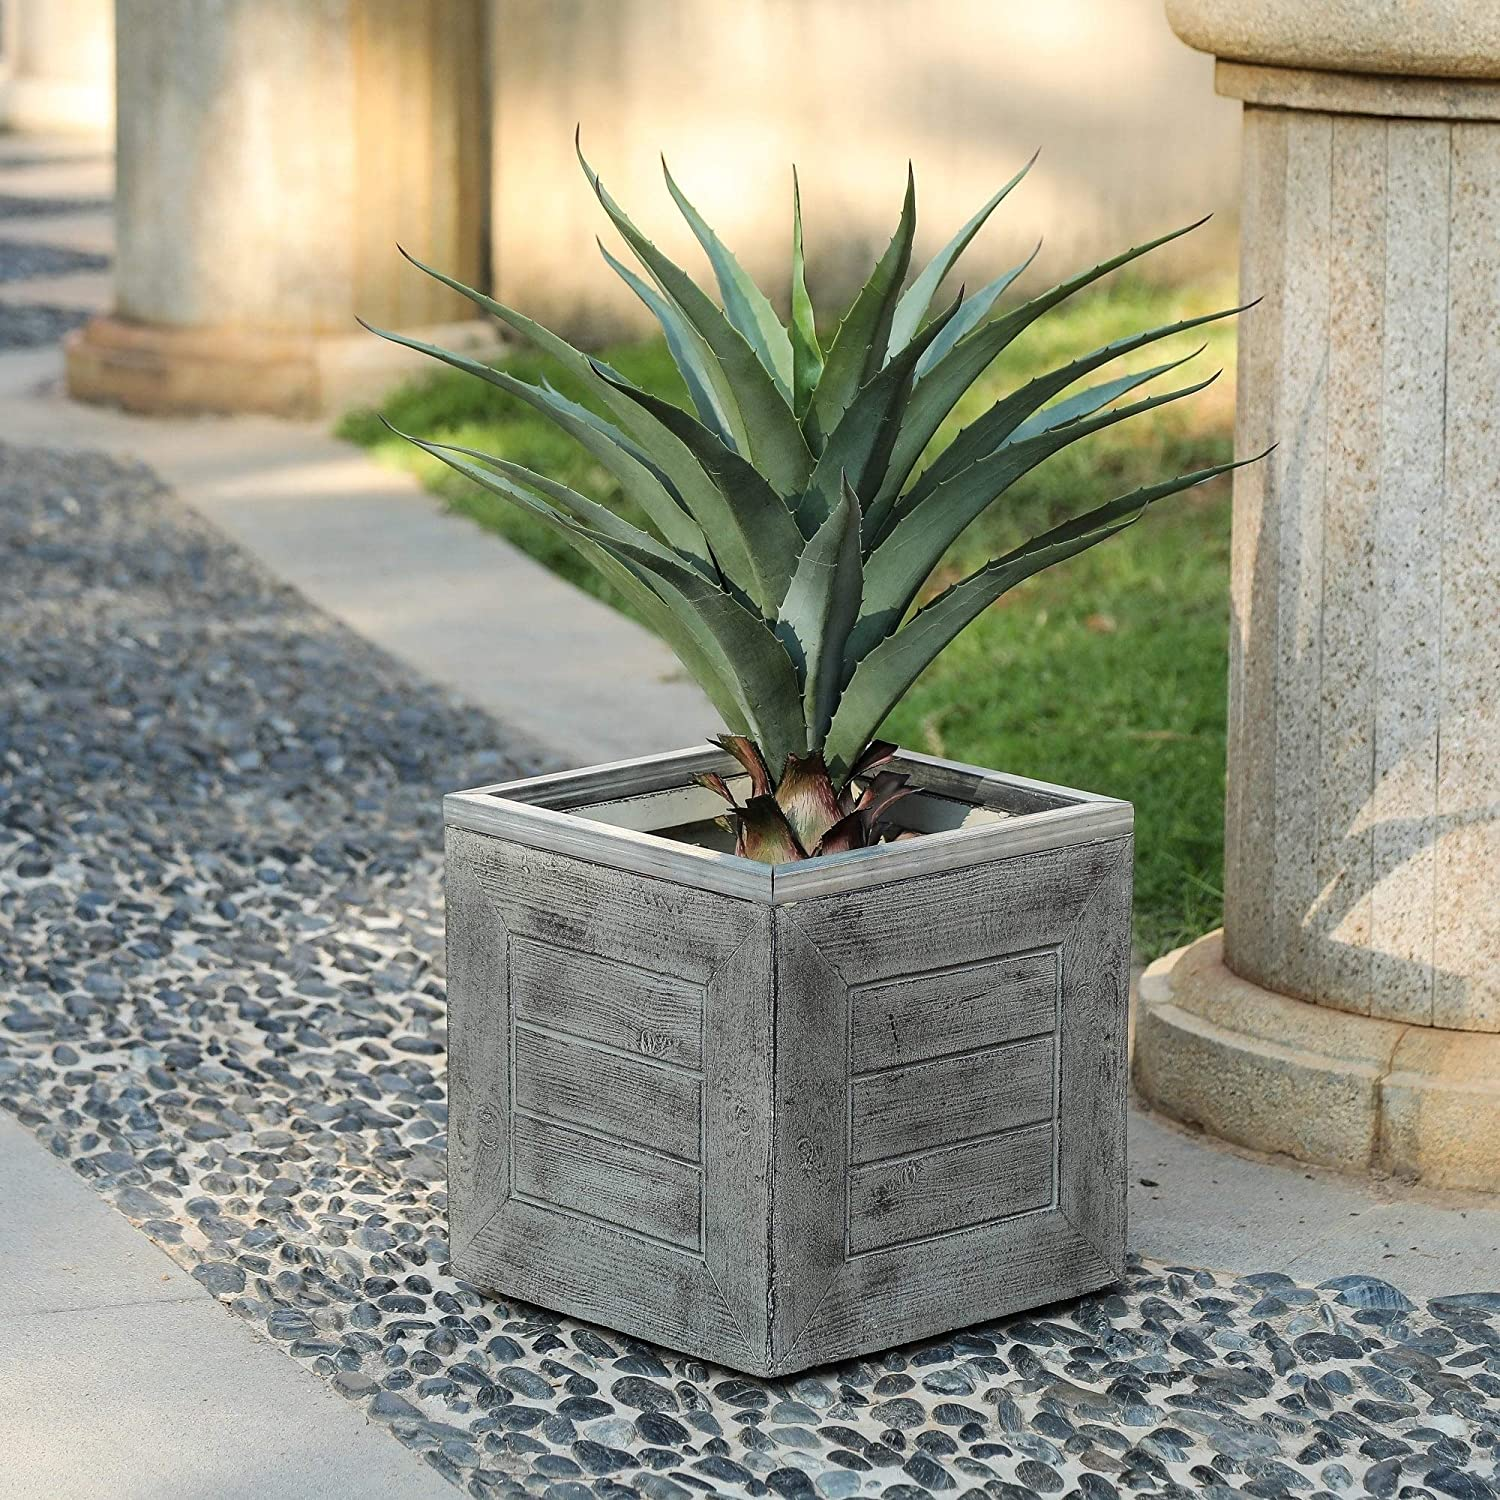 13in H Square Mgo Crate Planter Grey Farmhouse Rustic